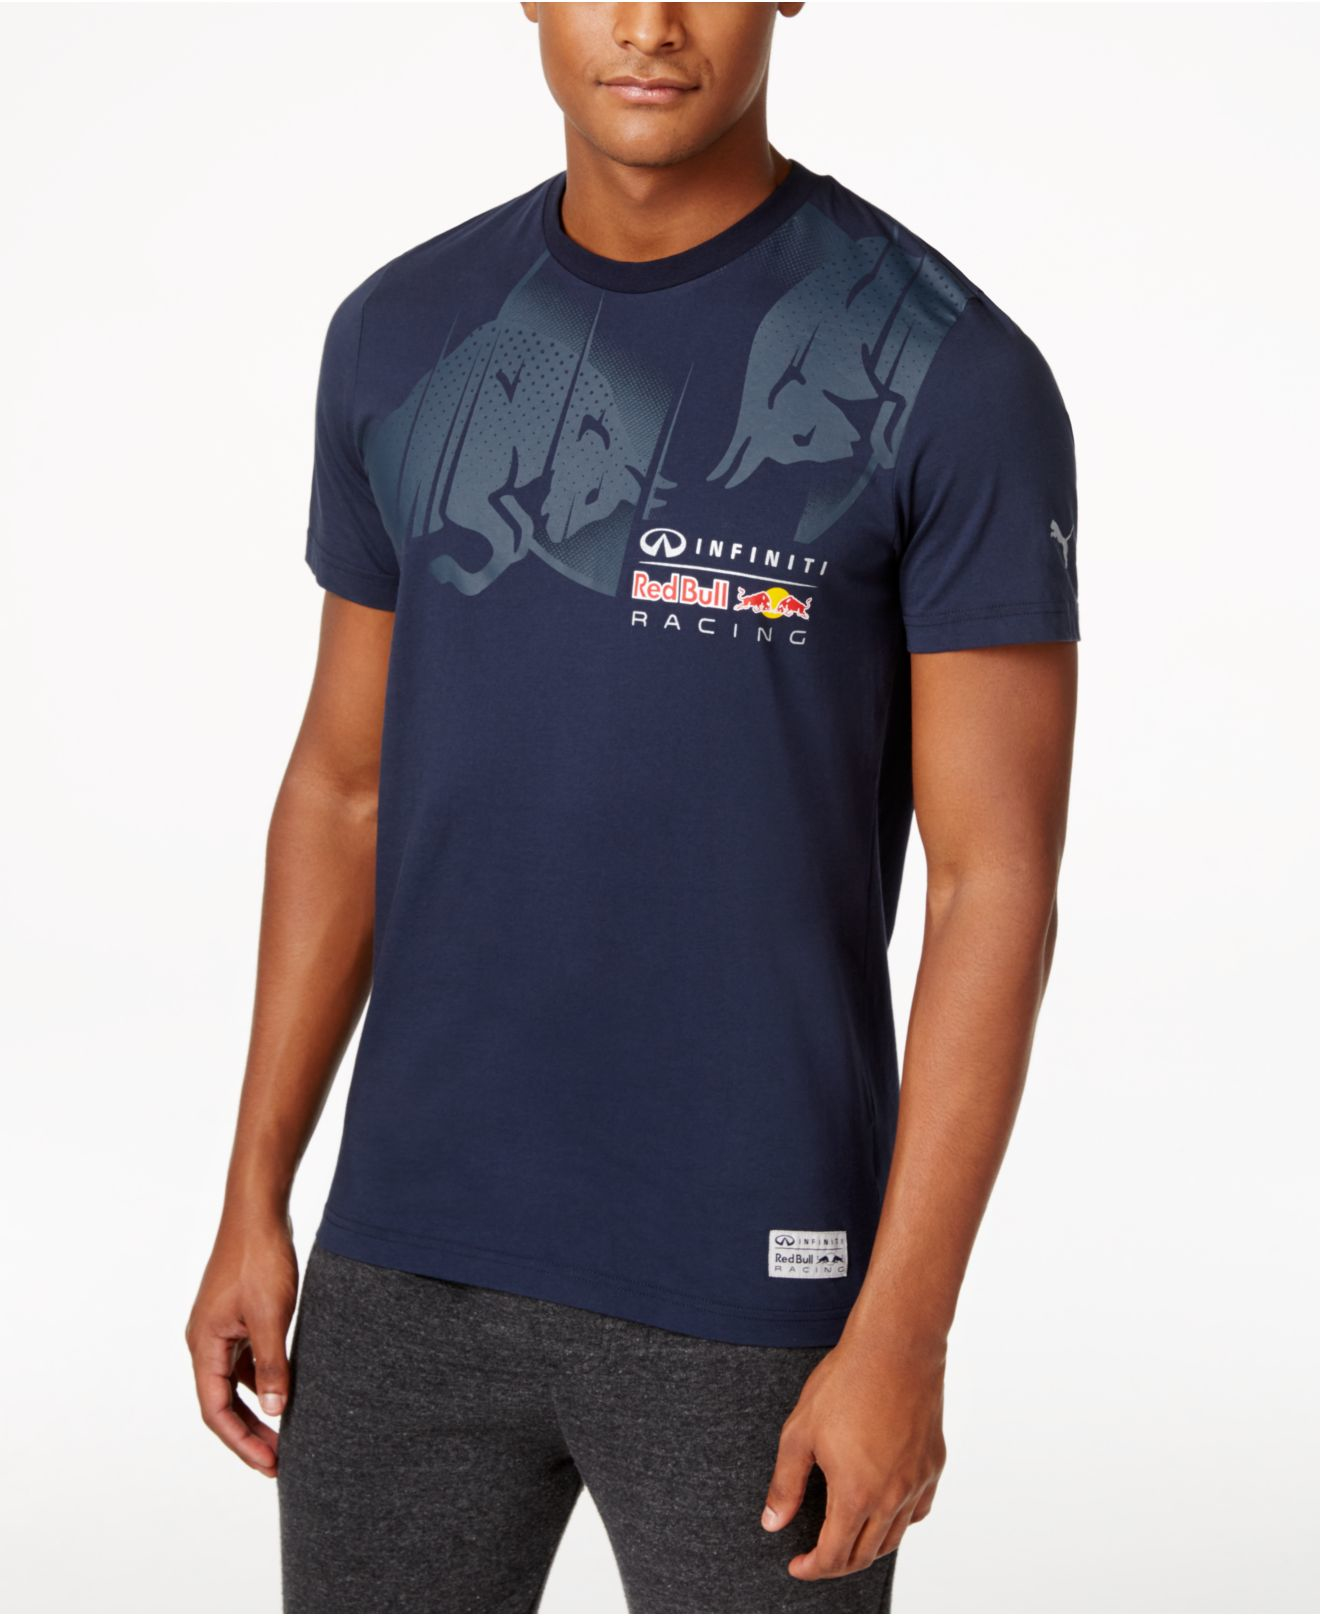 puma men 39 s red bull racing graphic t shirt in blue for men lyst. Black Bedroom Furniture Sets. Home Design Ideas